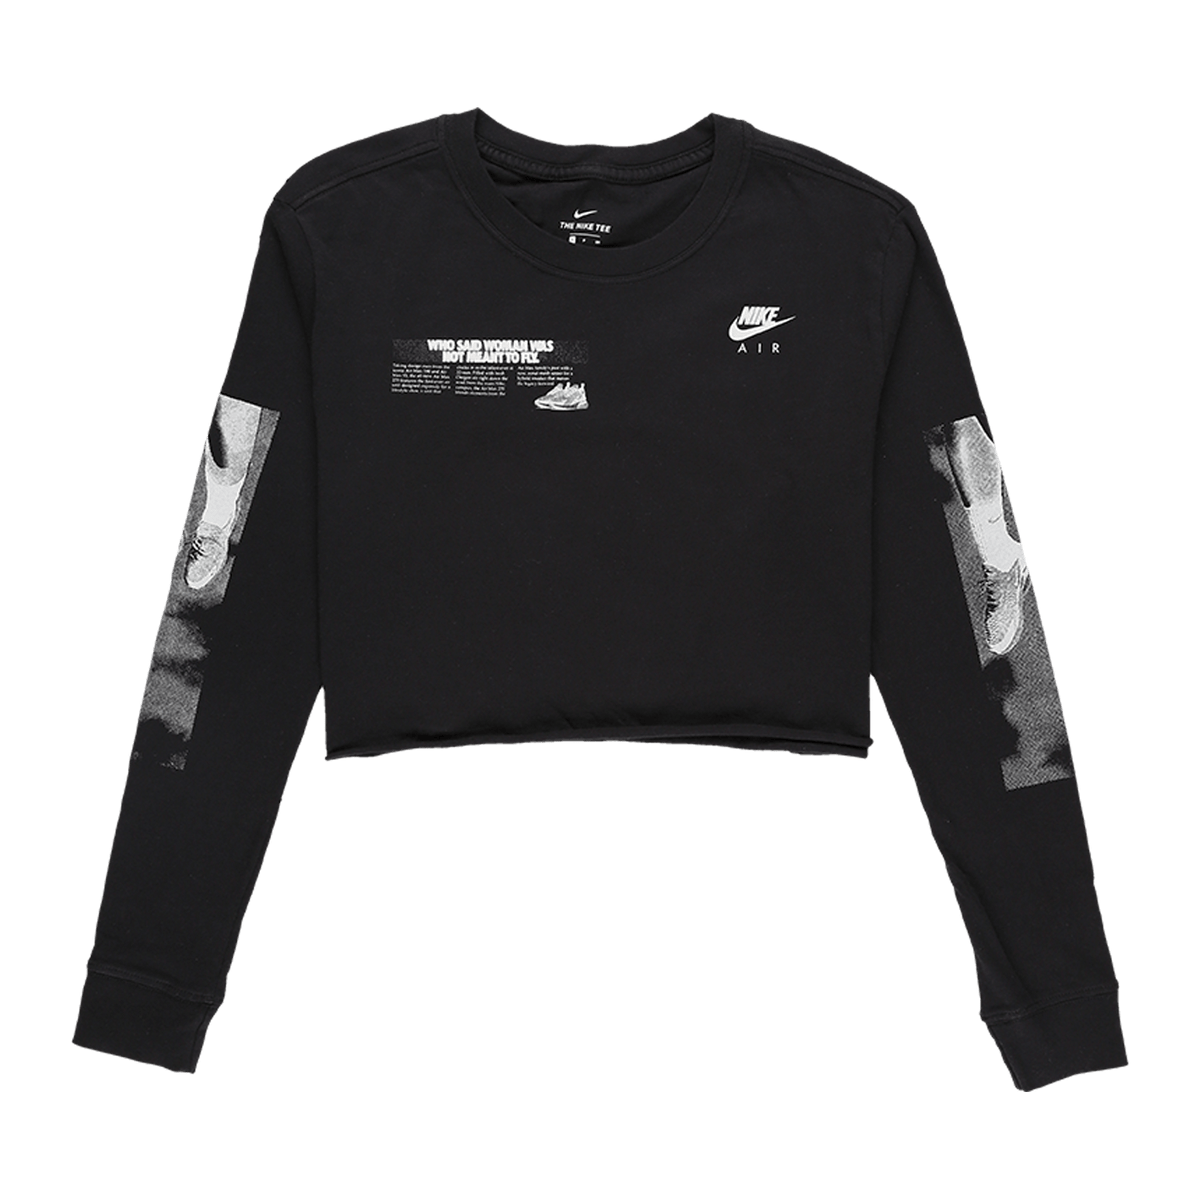 Nike Women's Lux Raw Cropped Long Sleeve T-Shirt  - XHIBITION